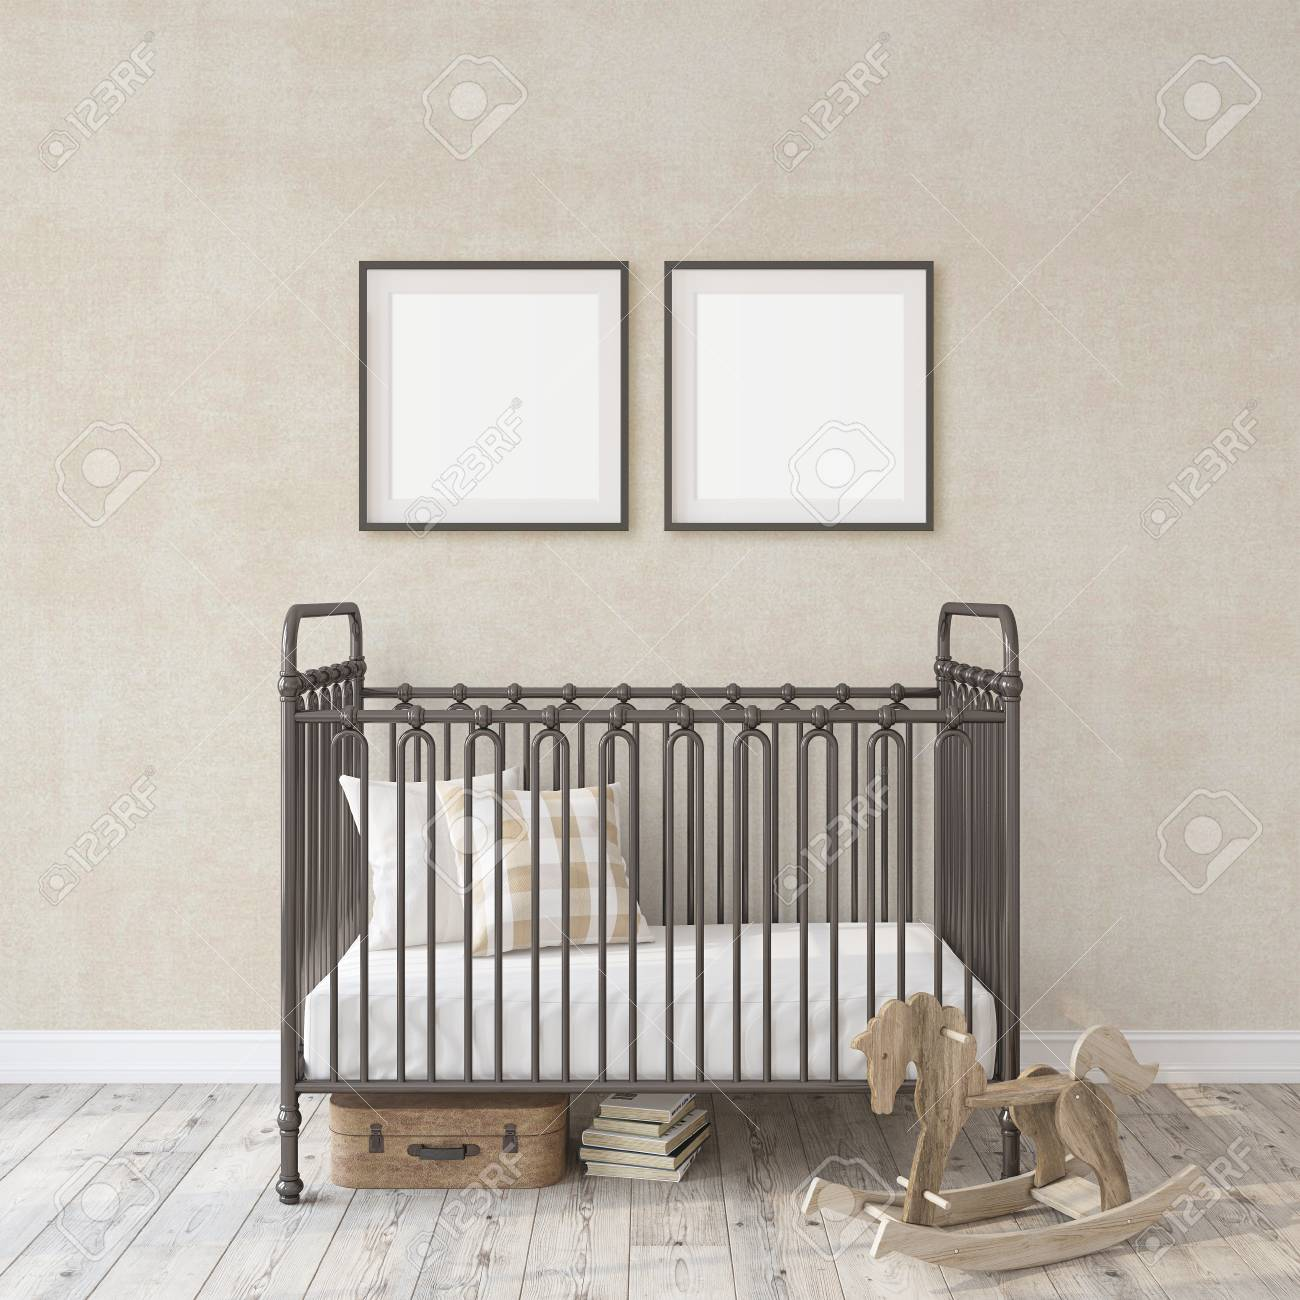 Farmhouse nursery. Black metal crib near white wall. Two black frames on the wall. Interior and frame mockup. 3d rendering. - 118411791